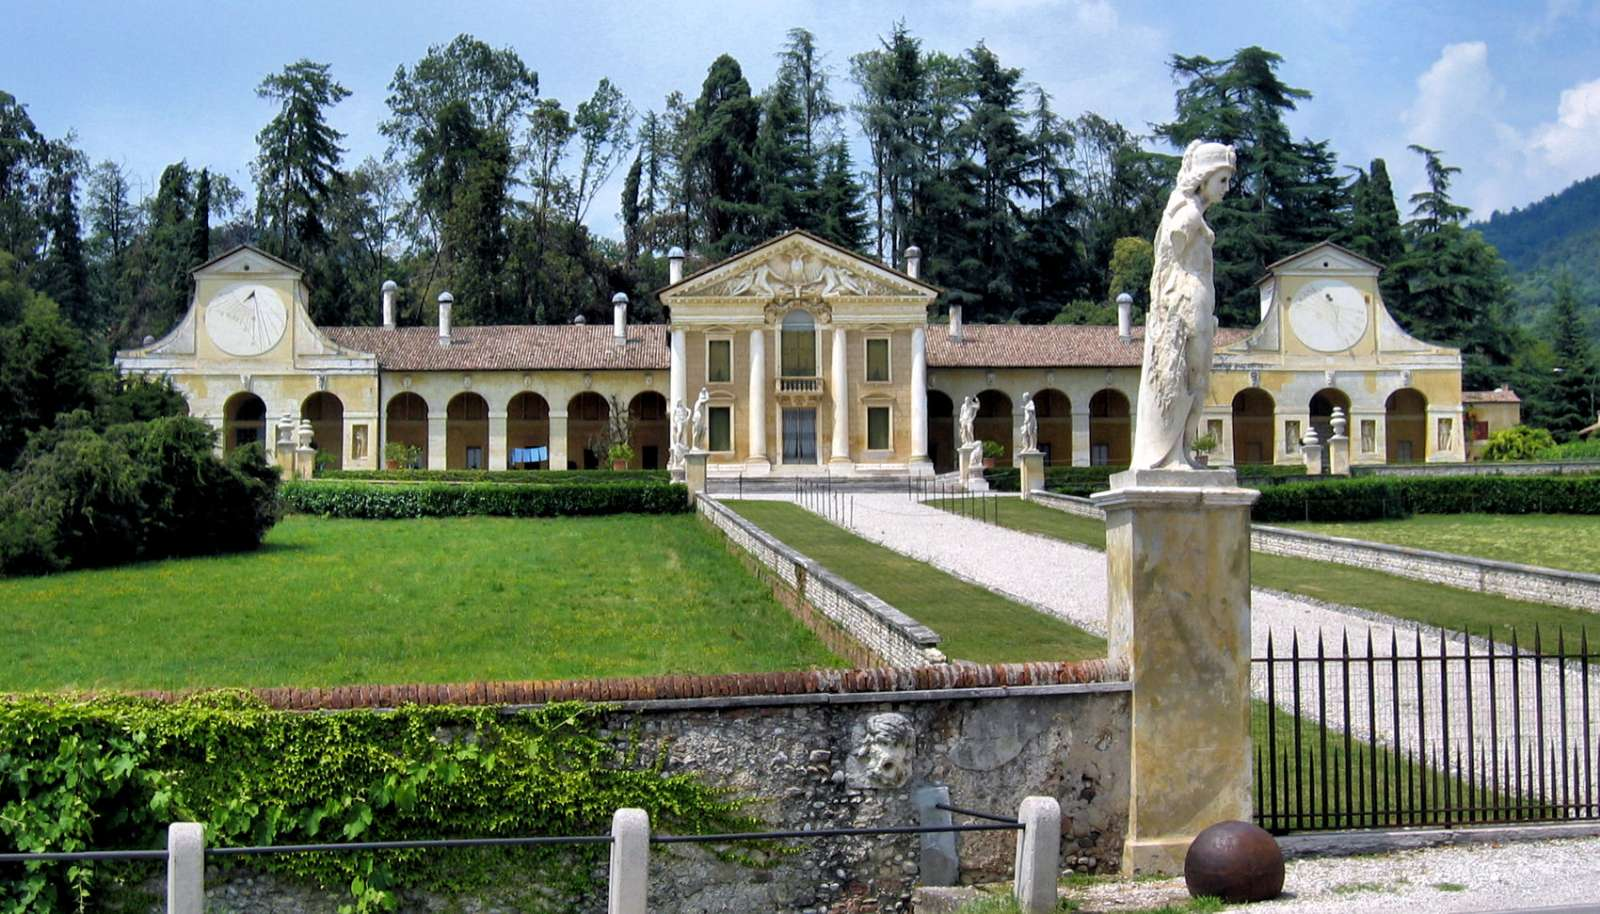 An example of one of many Veneto Palladian Villas